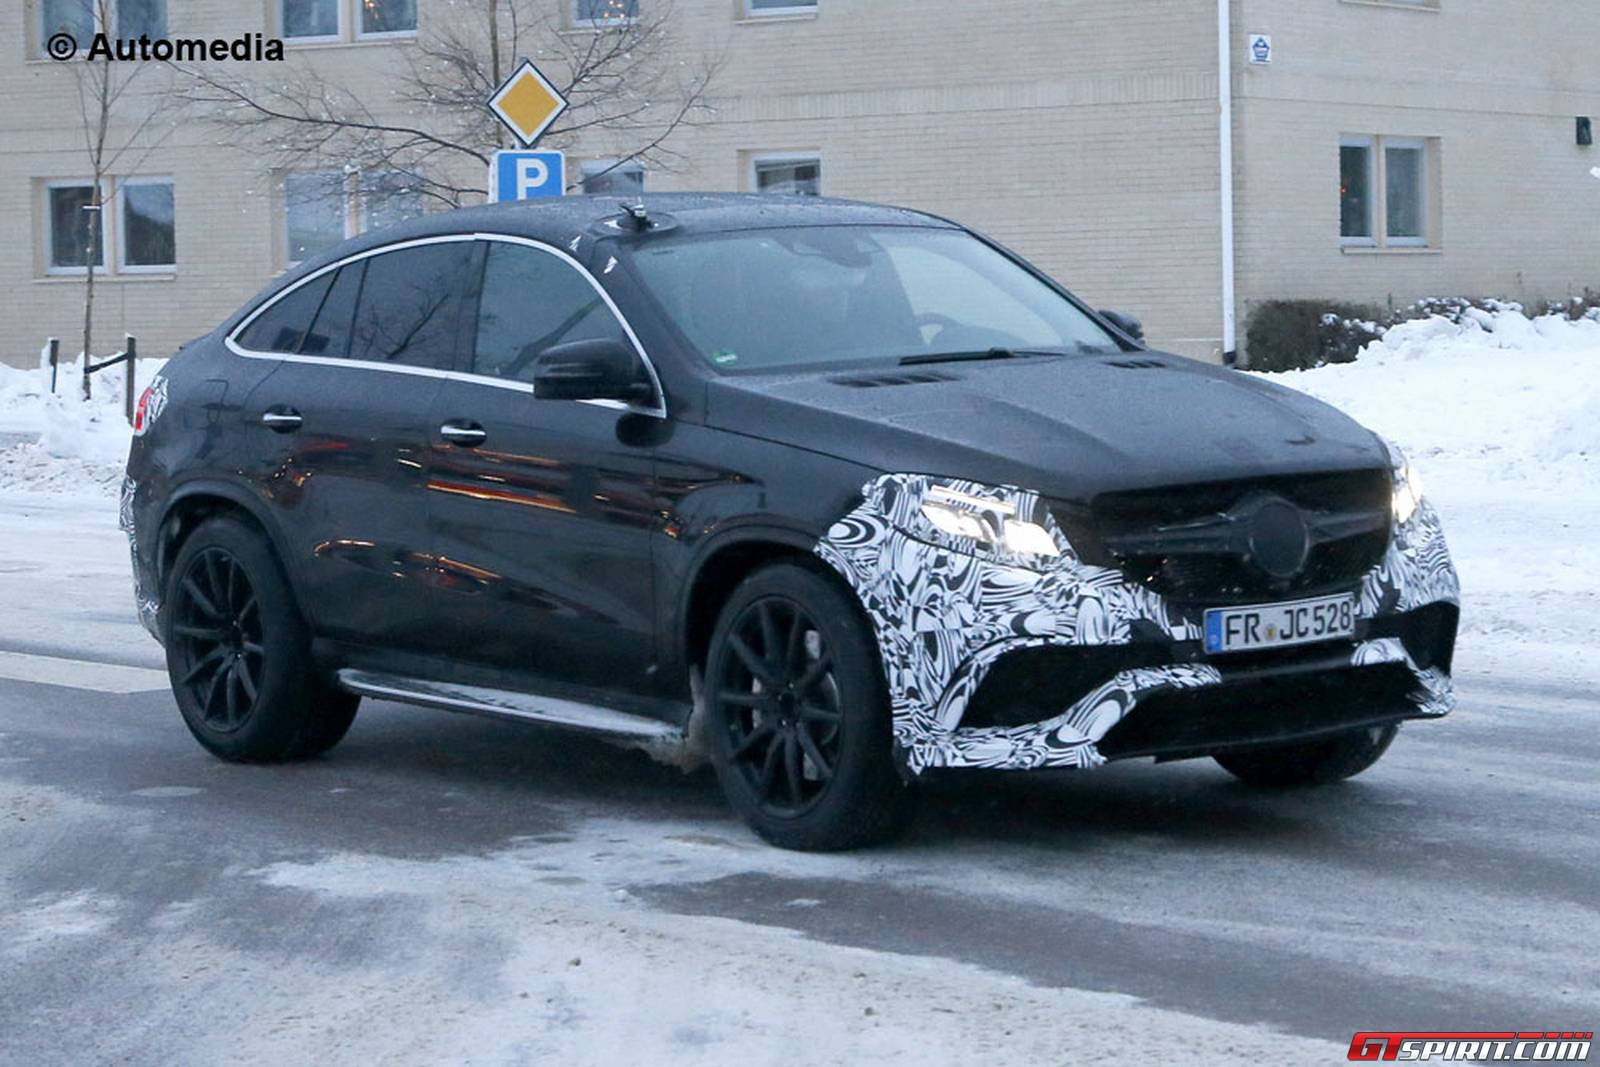 Spyshots white and black mercedes benz gle63 amg coupe for Mercedes benz gle63